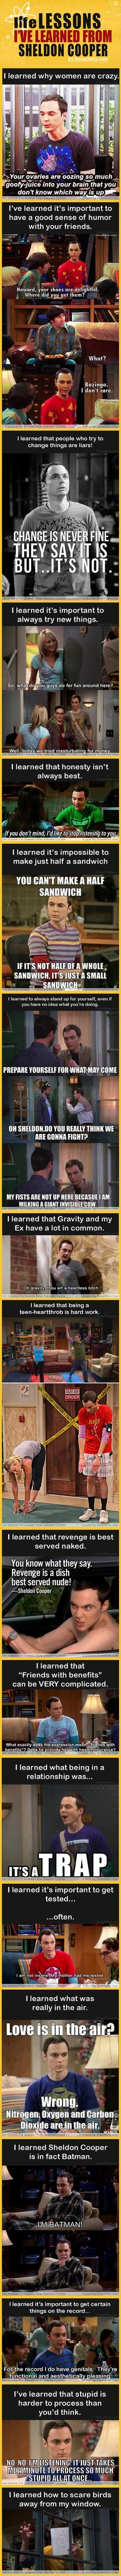 18 Lessons I've Learned From Sheldon Cooper